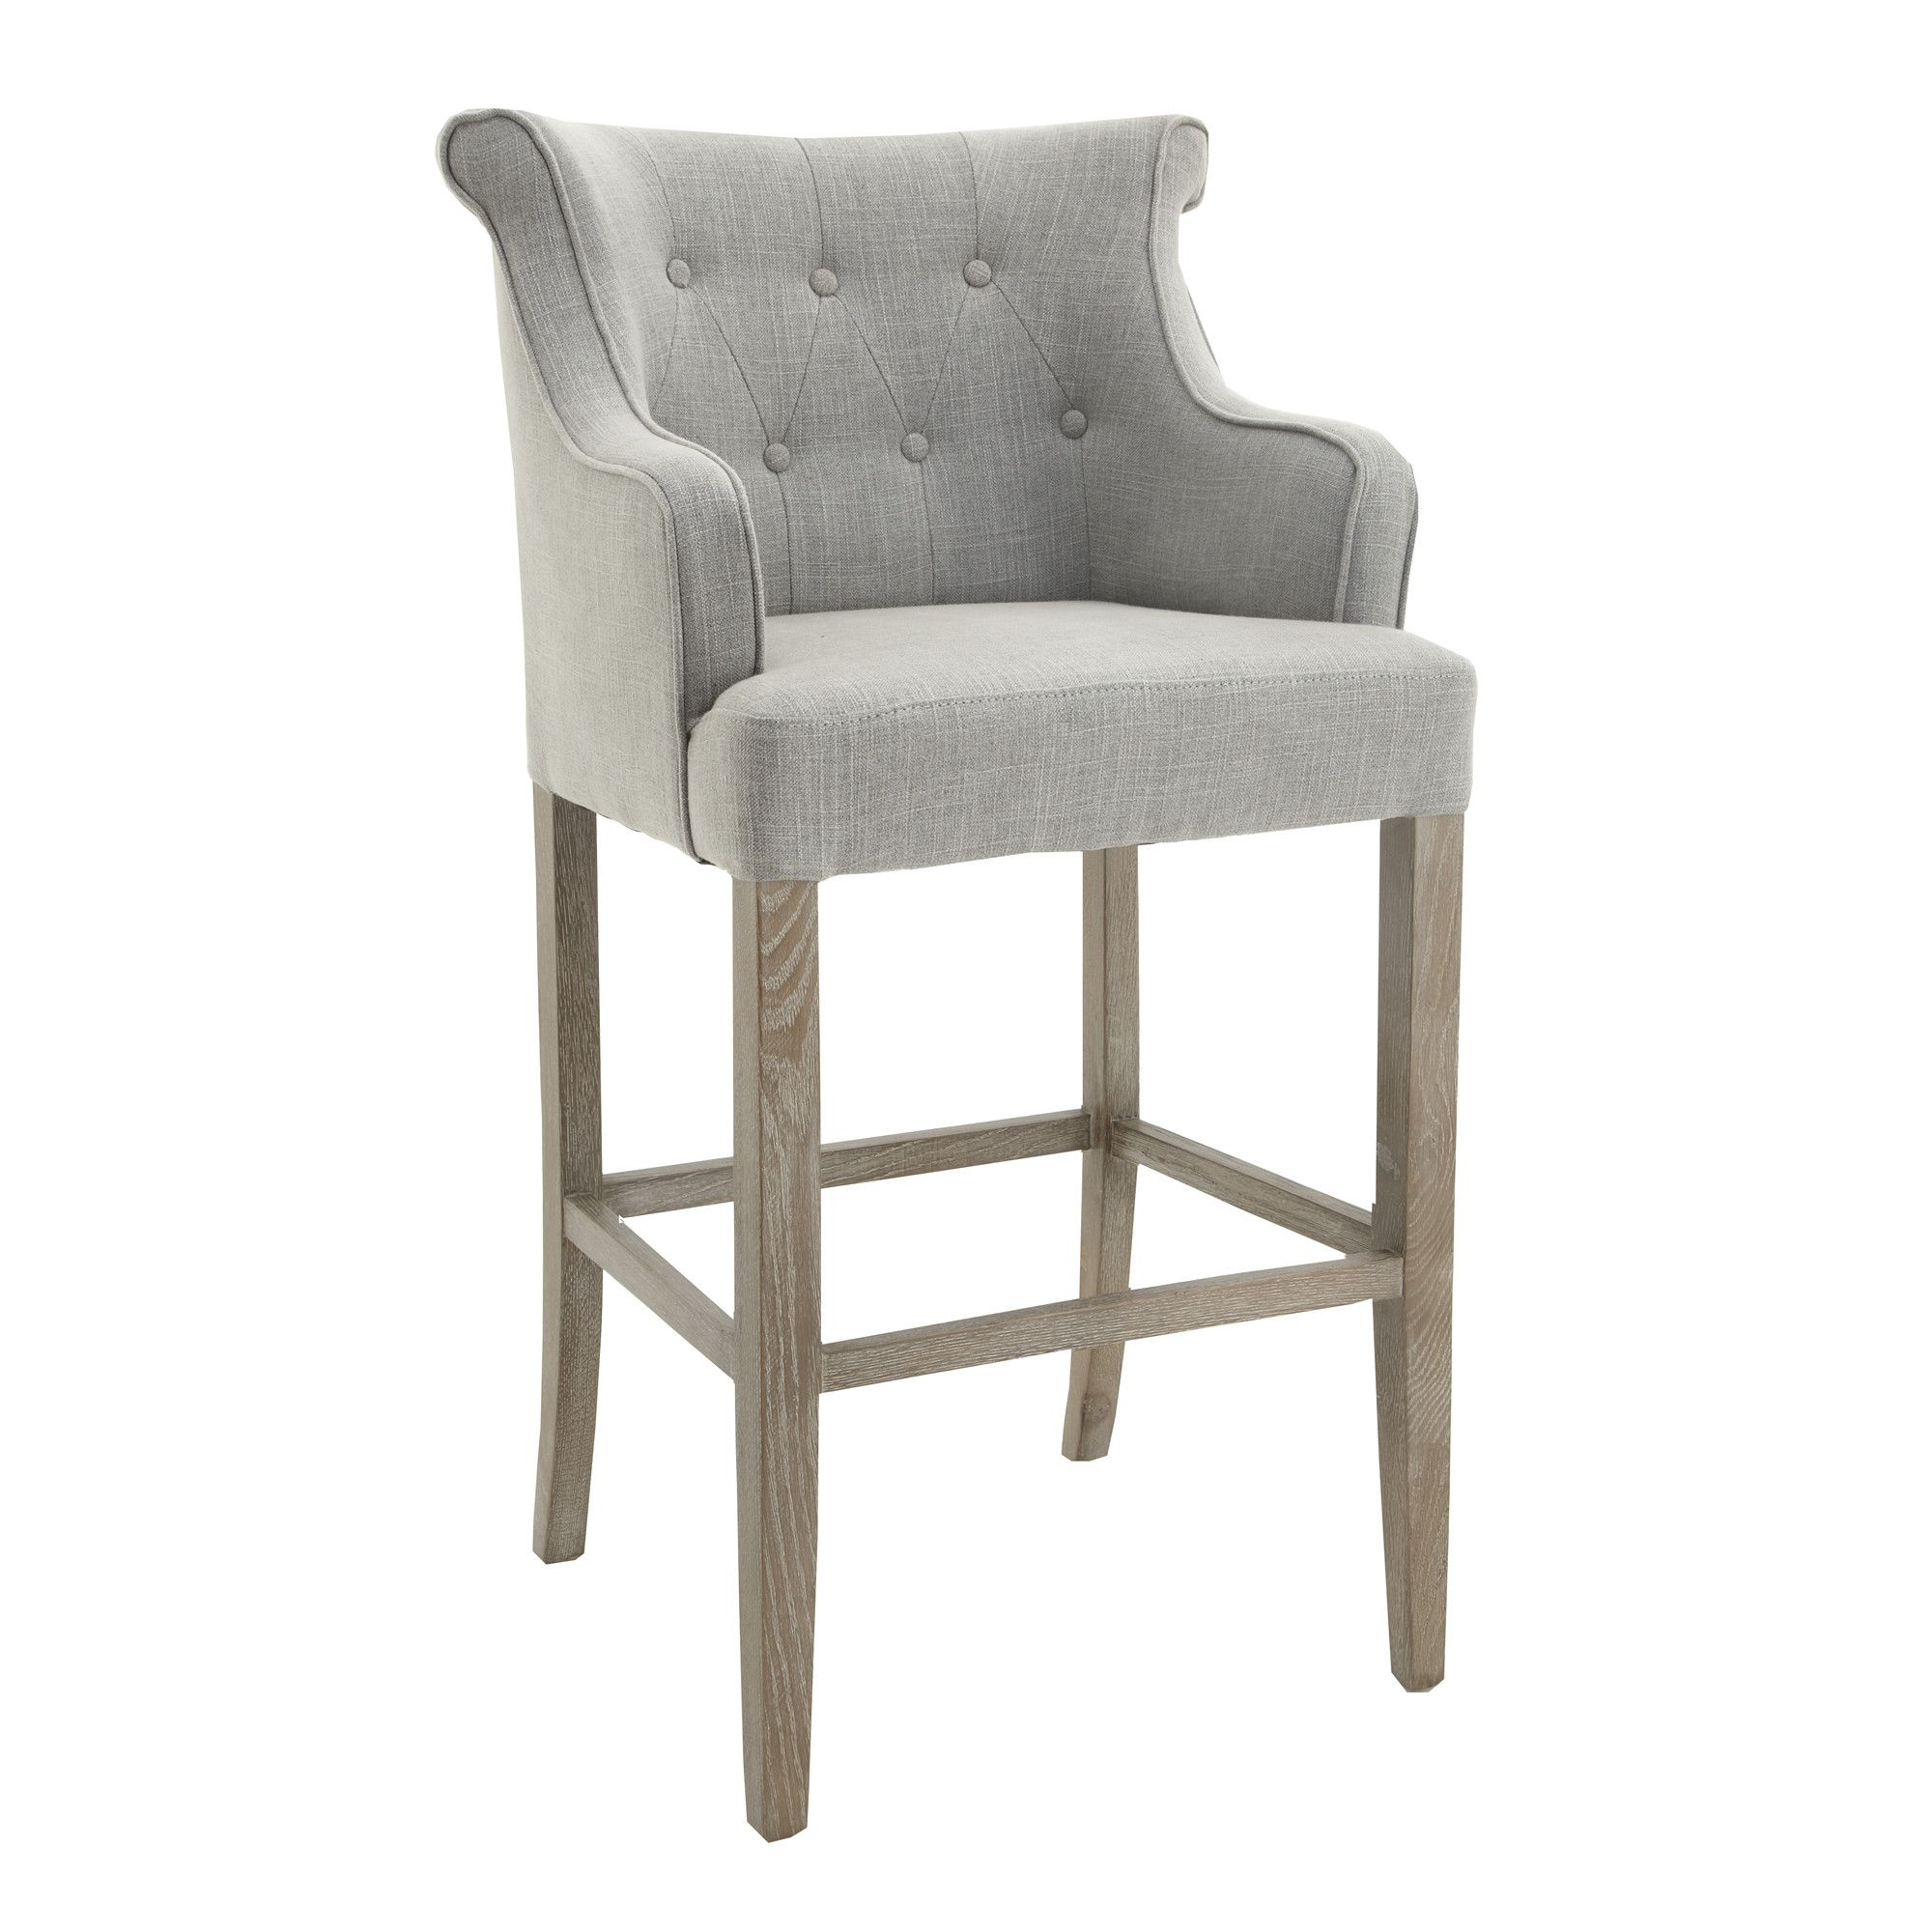 High Tables For Late Night Dining And Breakfast Bars The Morning Get Up Will Both Be Beautifully Complemented By Allegra Bar Chair